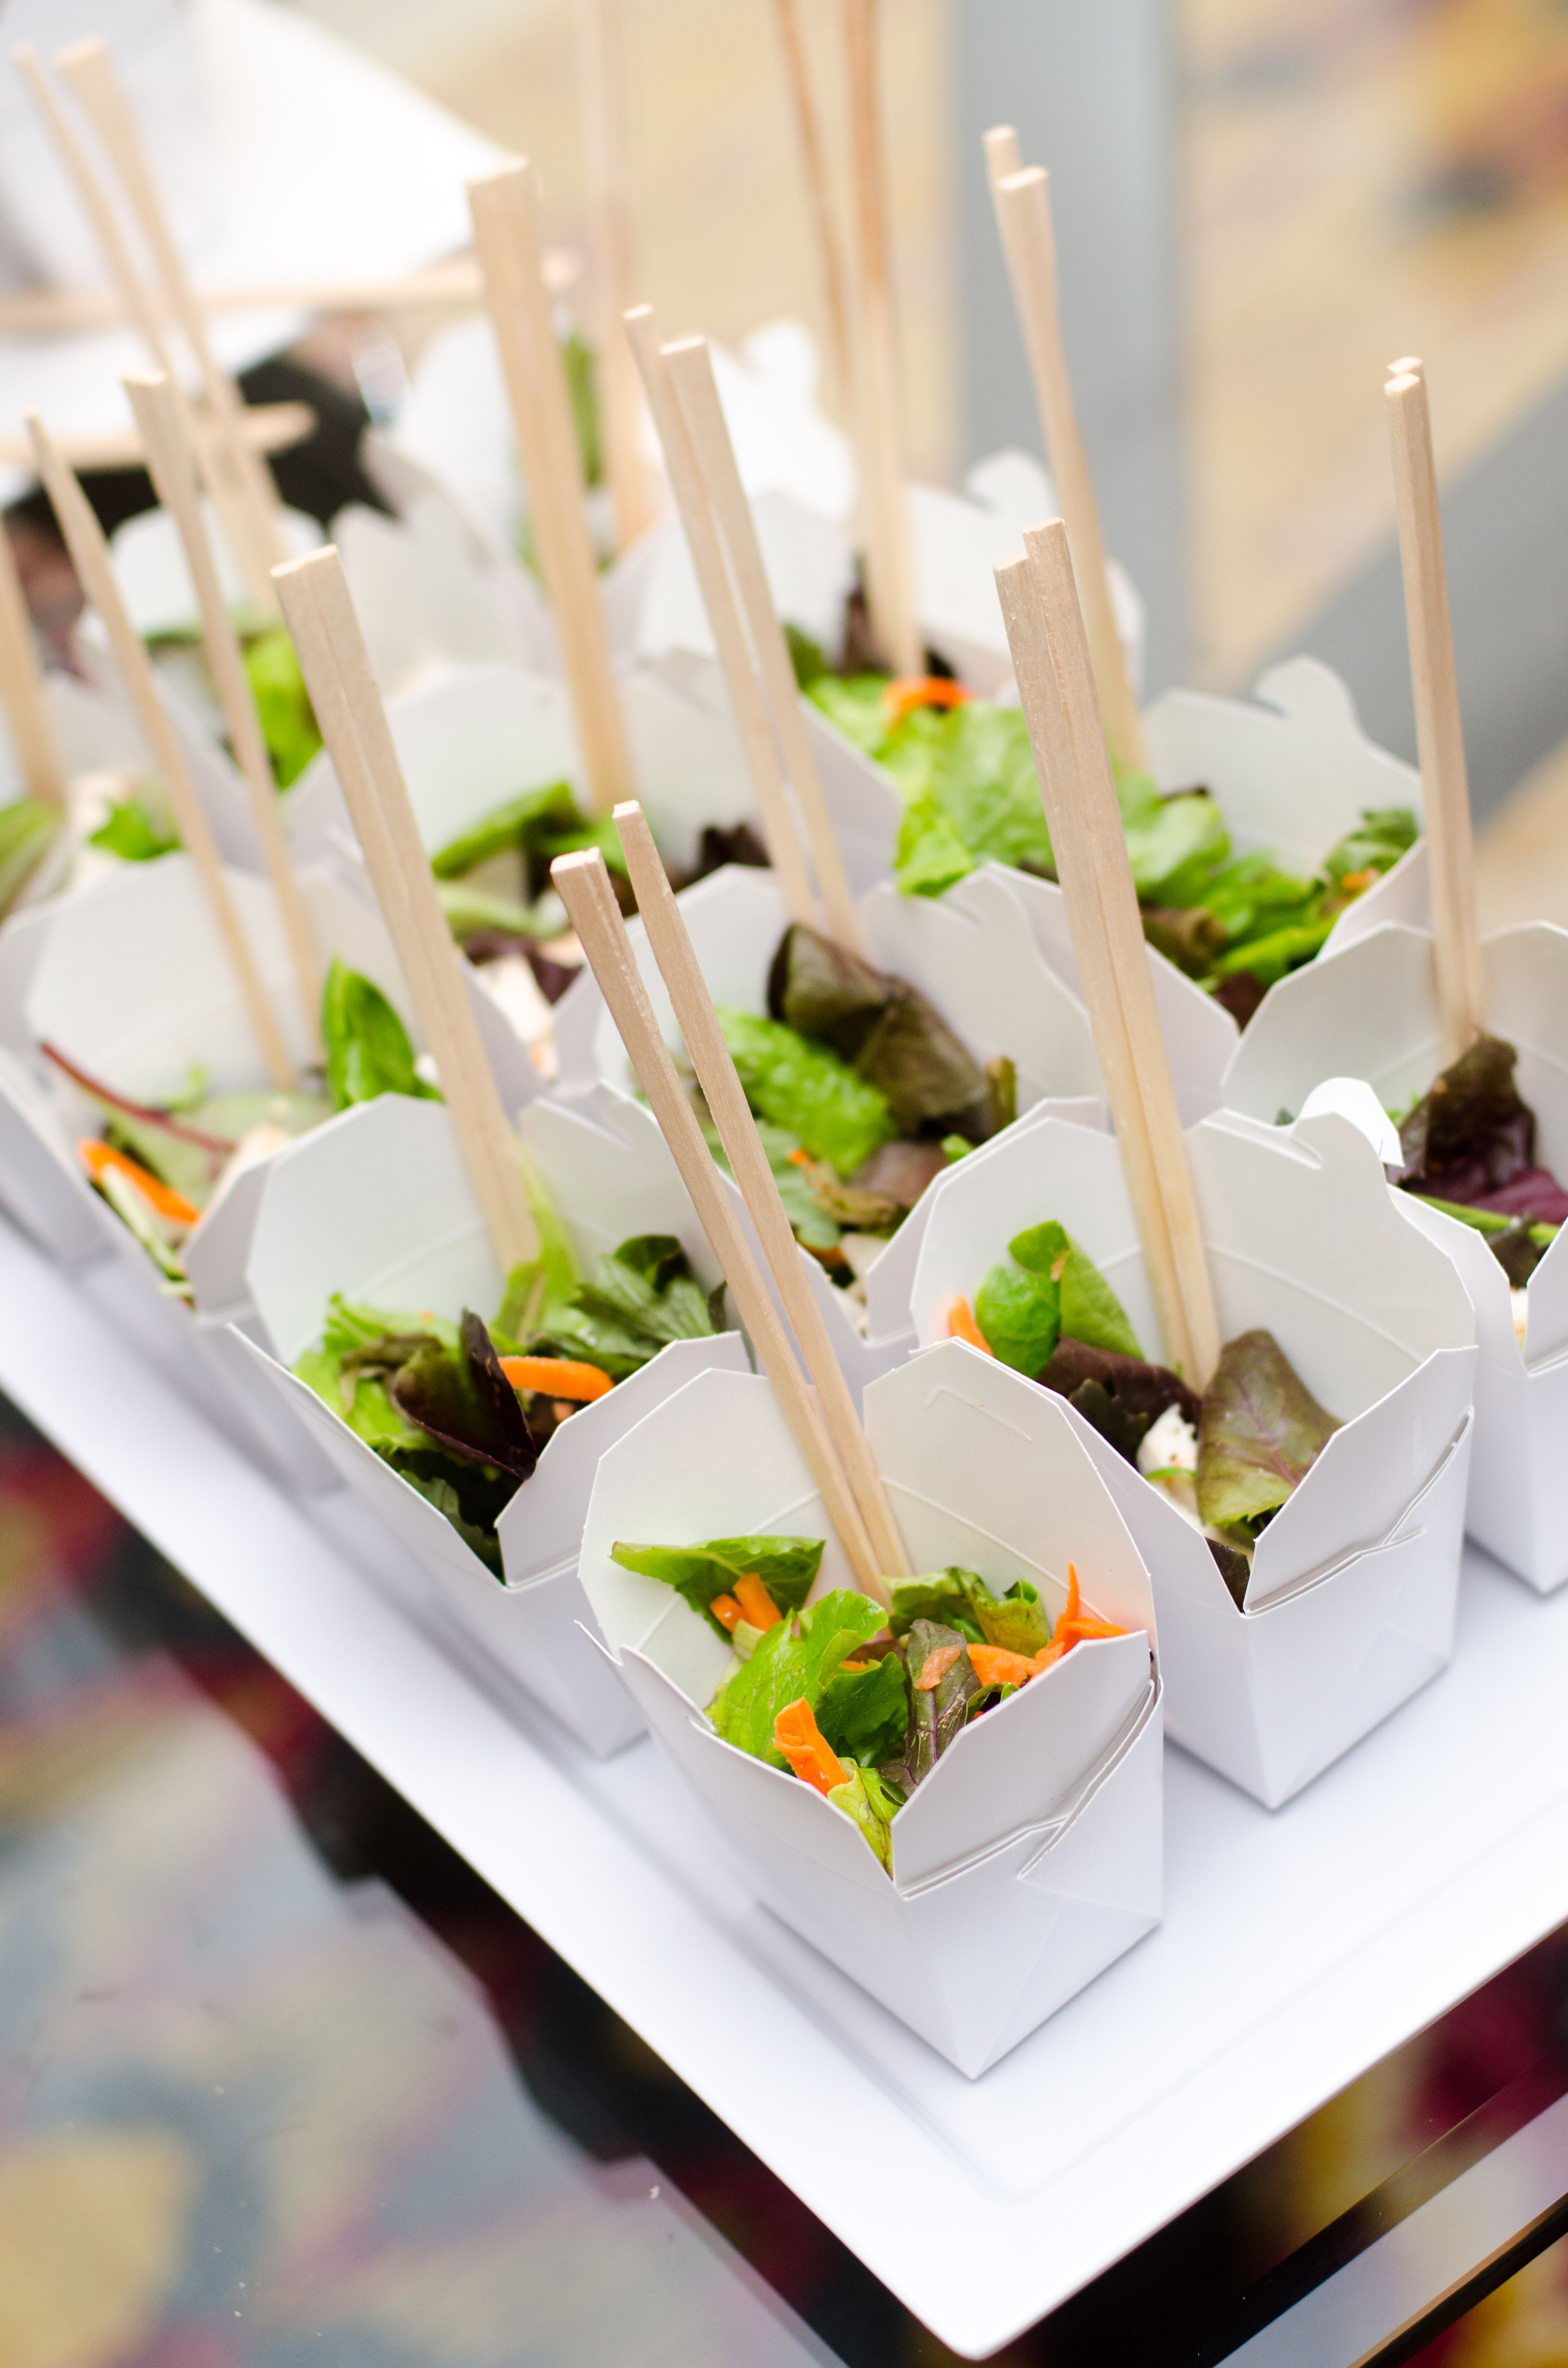 Salads in Mini Take-out Boxes | Wedding food, Wedding ...